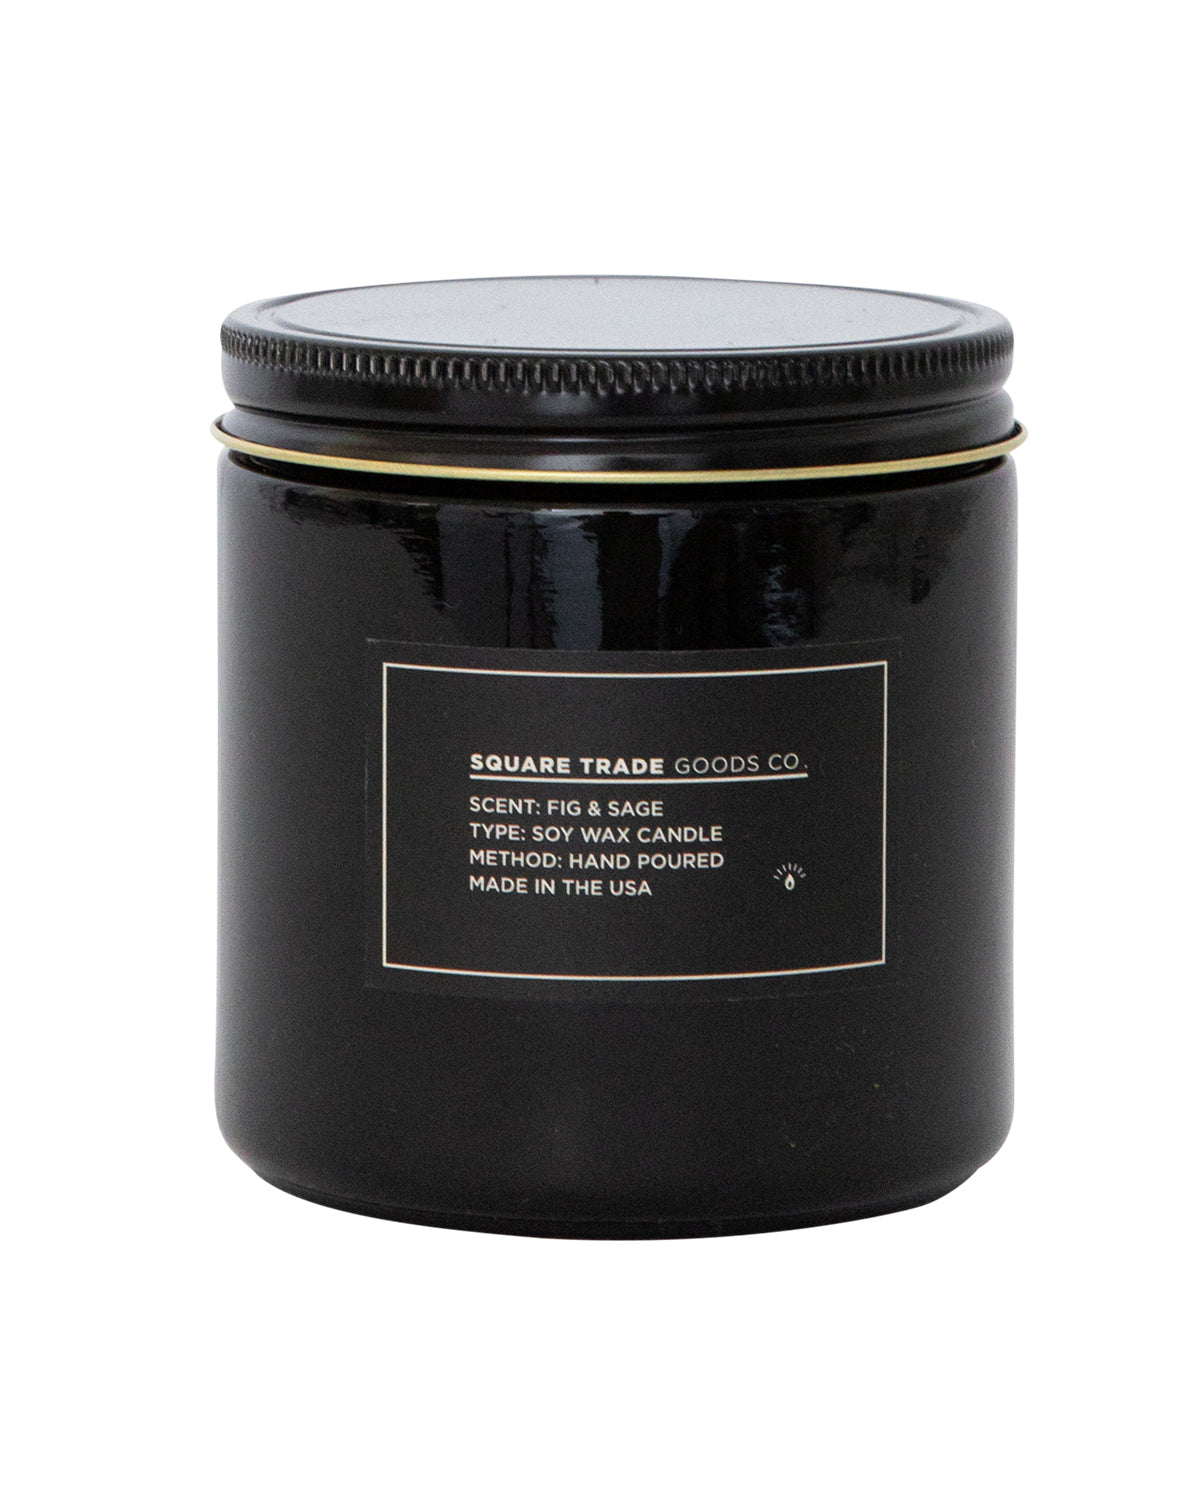 Square Trade Goods Co. Candle